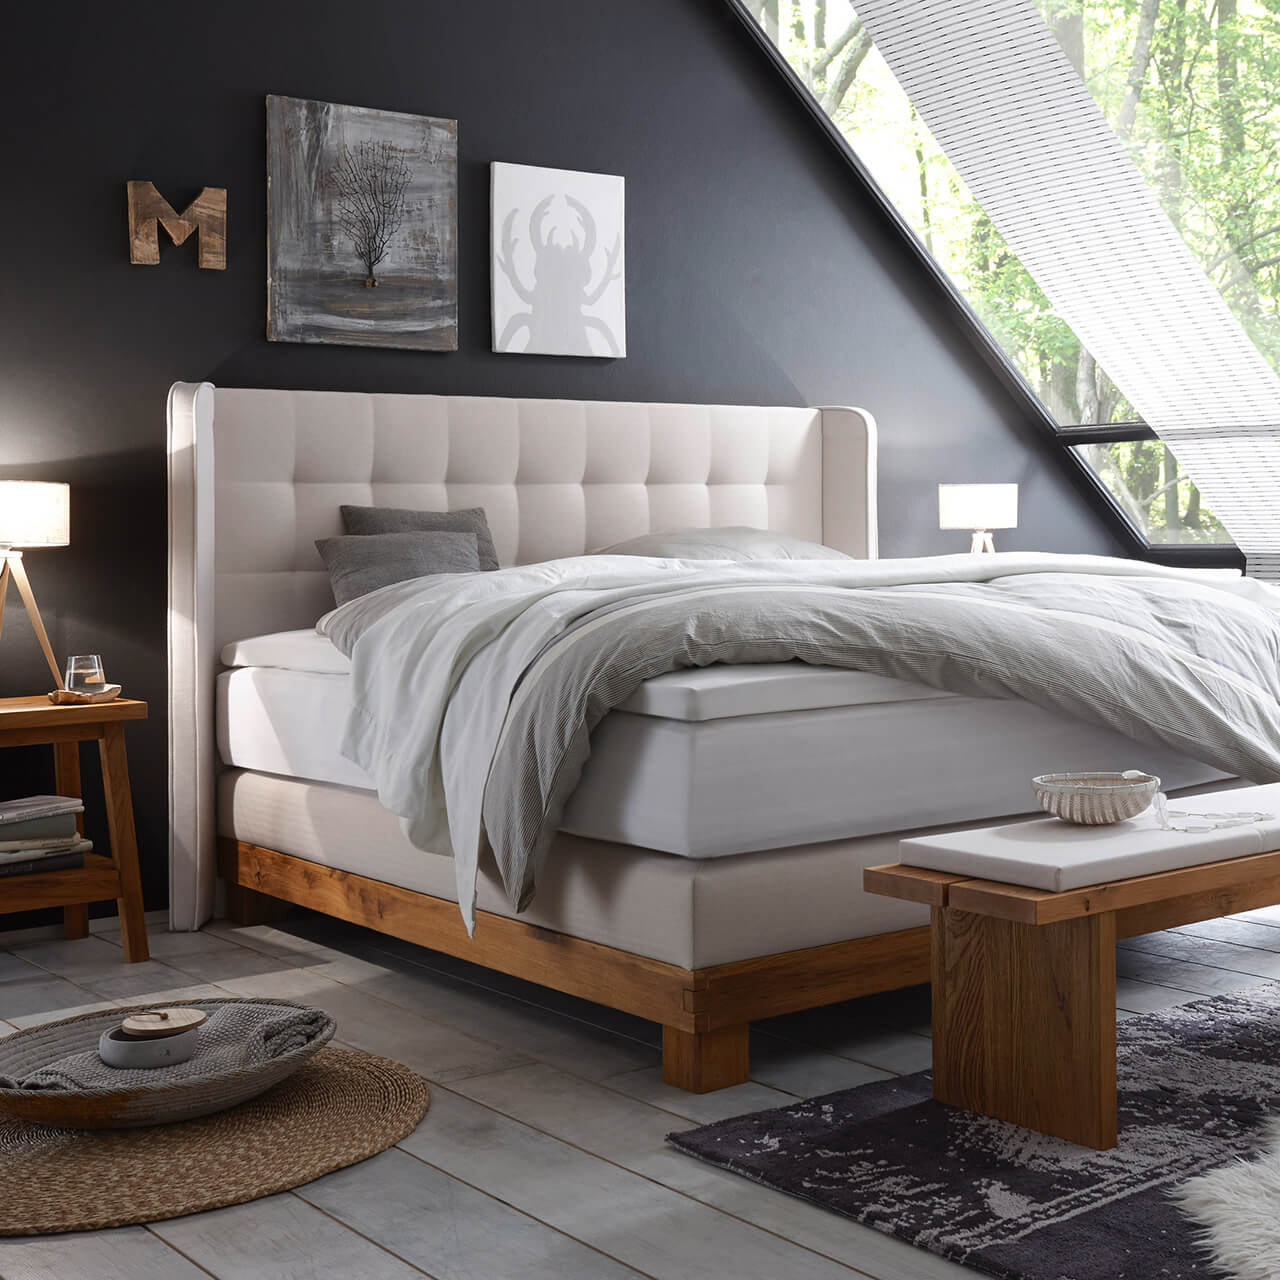 boxspringbett massiva box 16 basis 10 umgebaut zum boxspring wasserbett suma wasserbetten. Black Bedroom Furniture Sets. Home Design Ideas